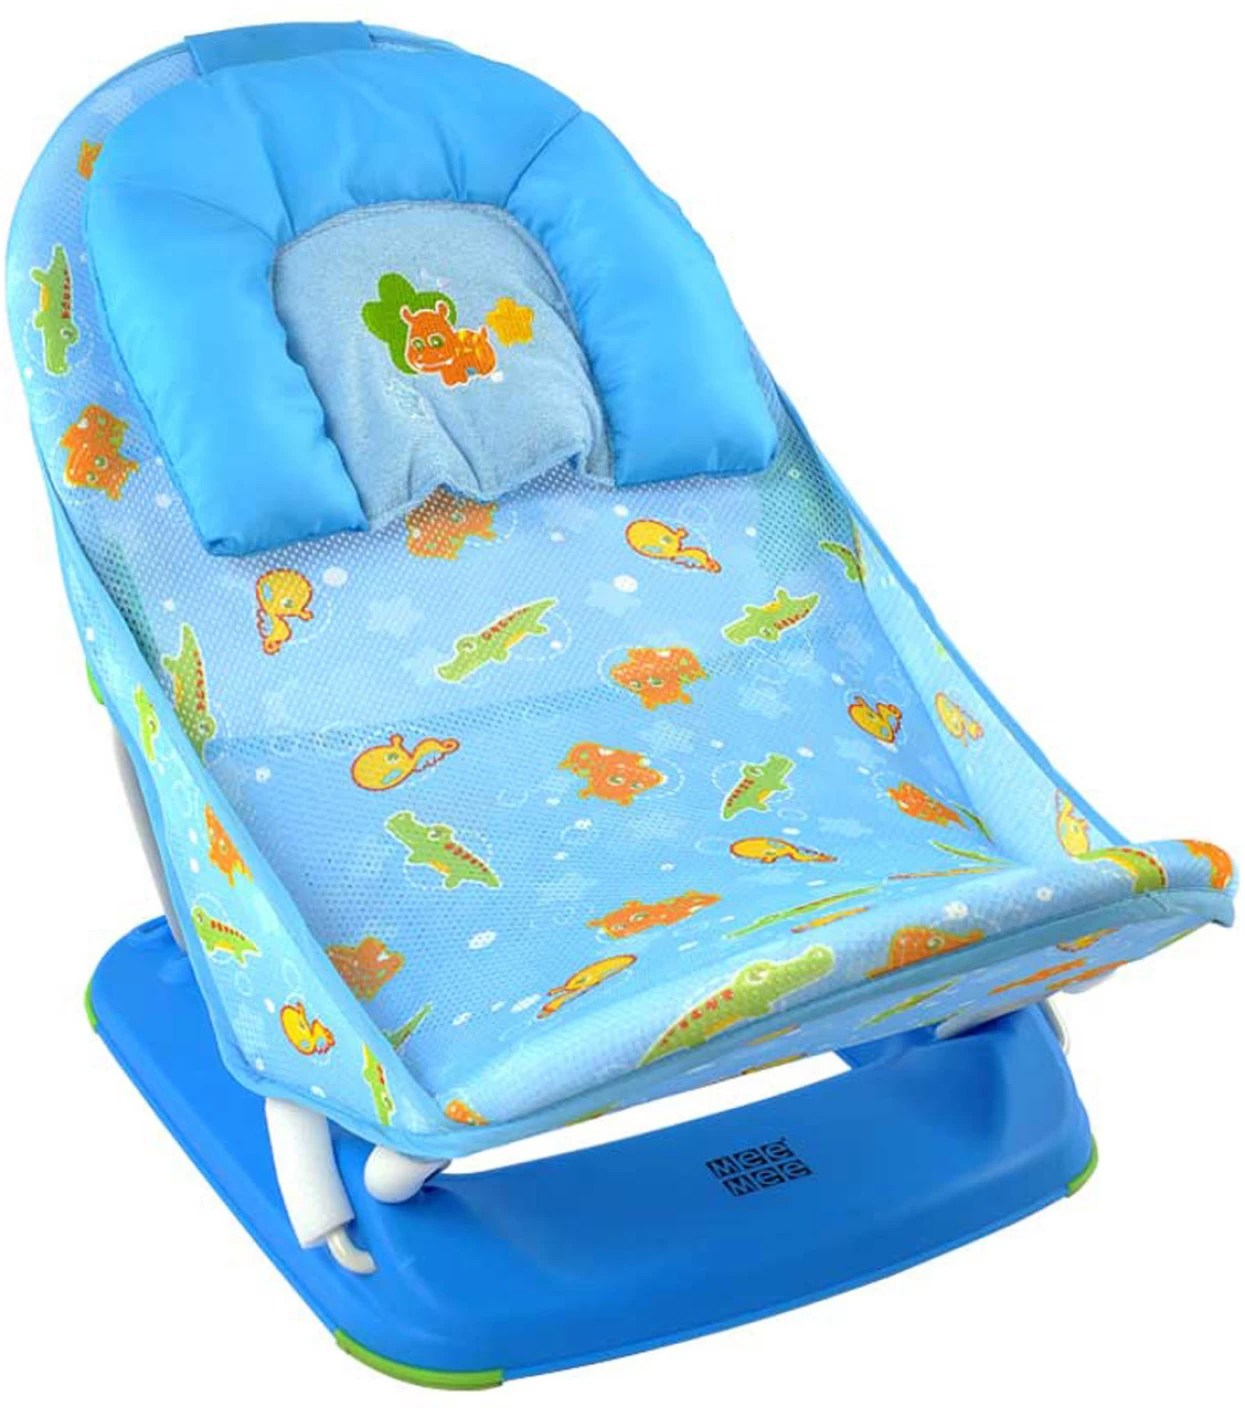 baby chair bath turquoise dining meemee bather seat price in india buy